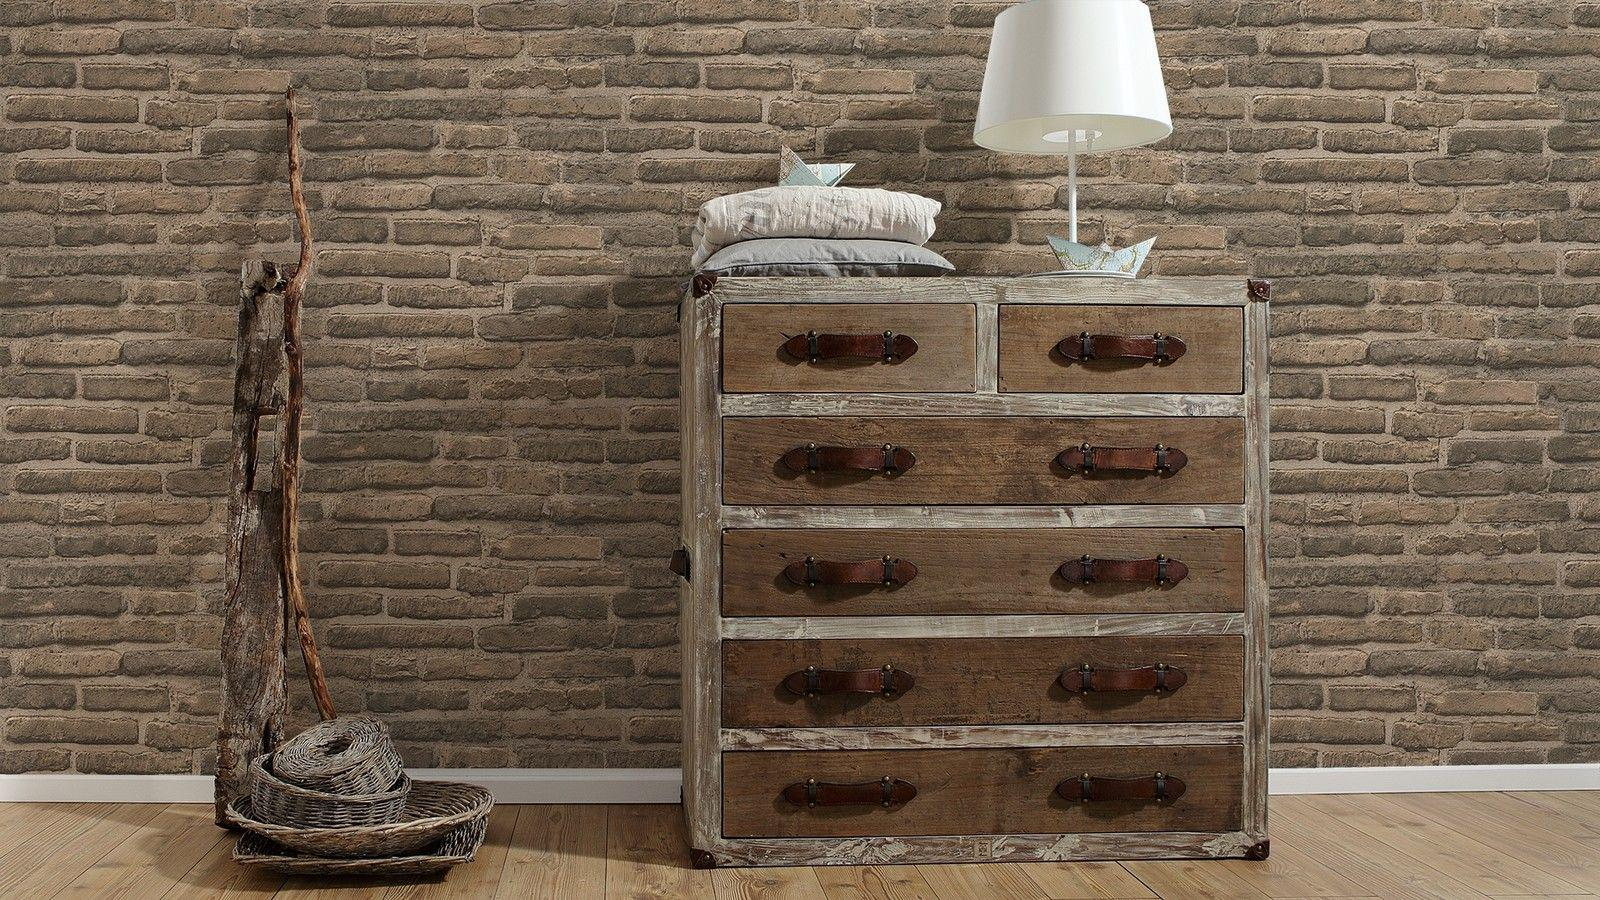 vlies tapete stein wand ziegelstein backstein klinker optik braun grau 30747 2 kaufen bei. Black Bedroom Furniture Sets. Home Design Ideas